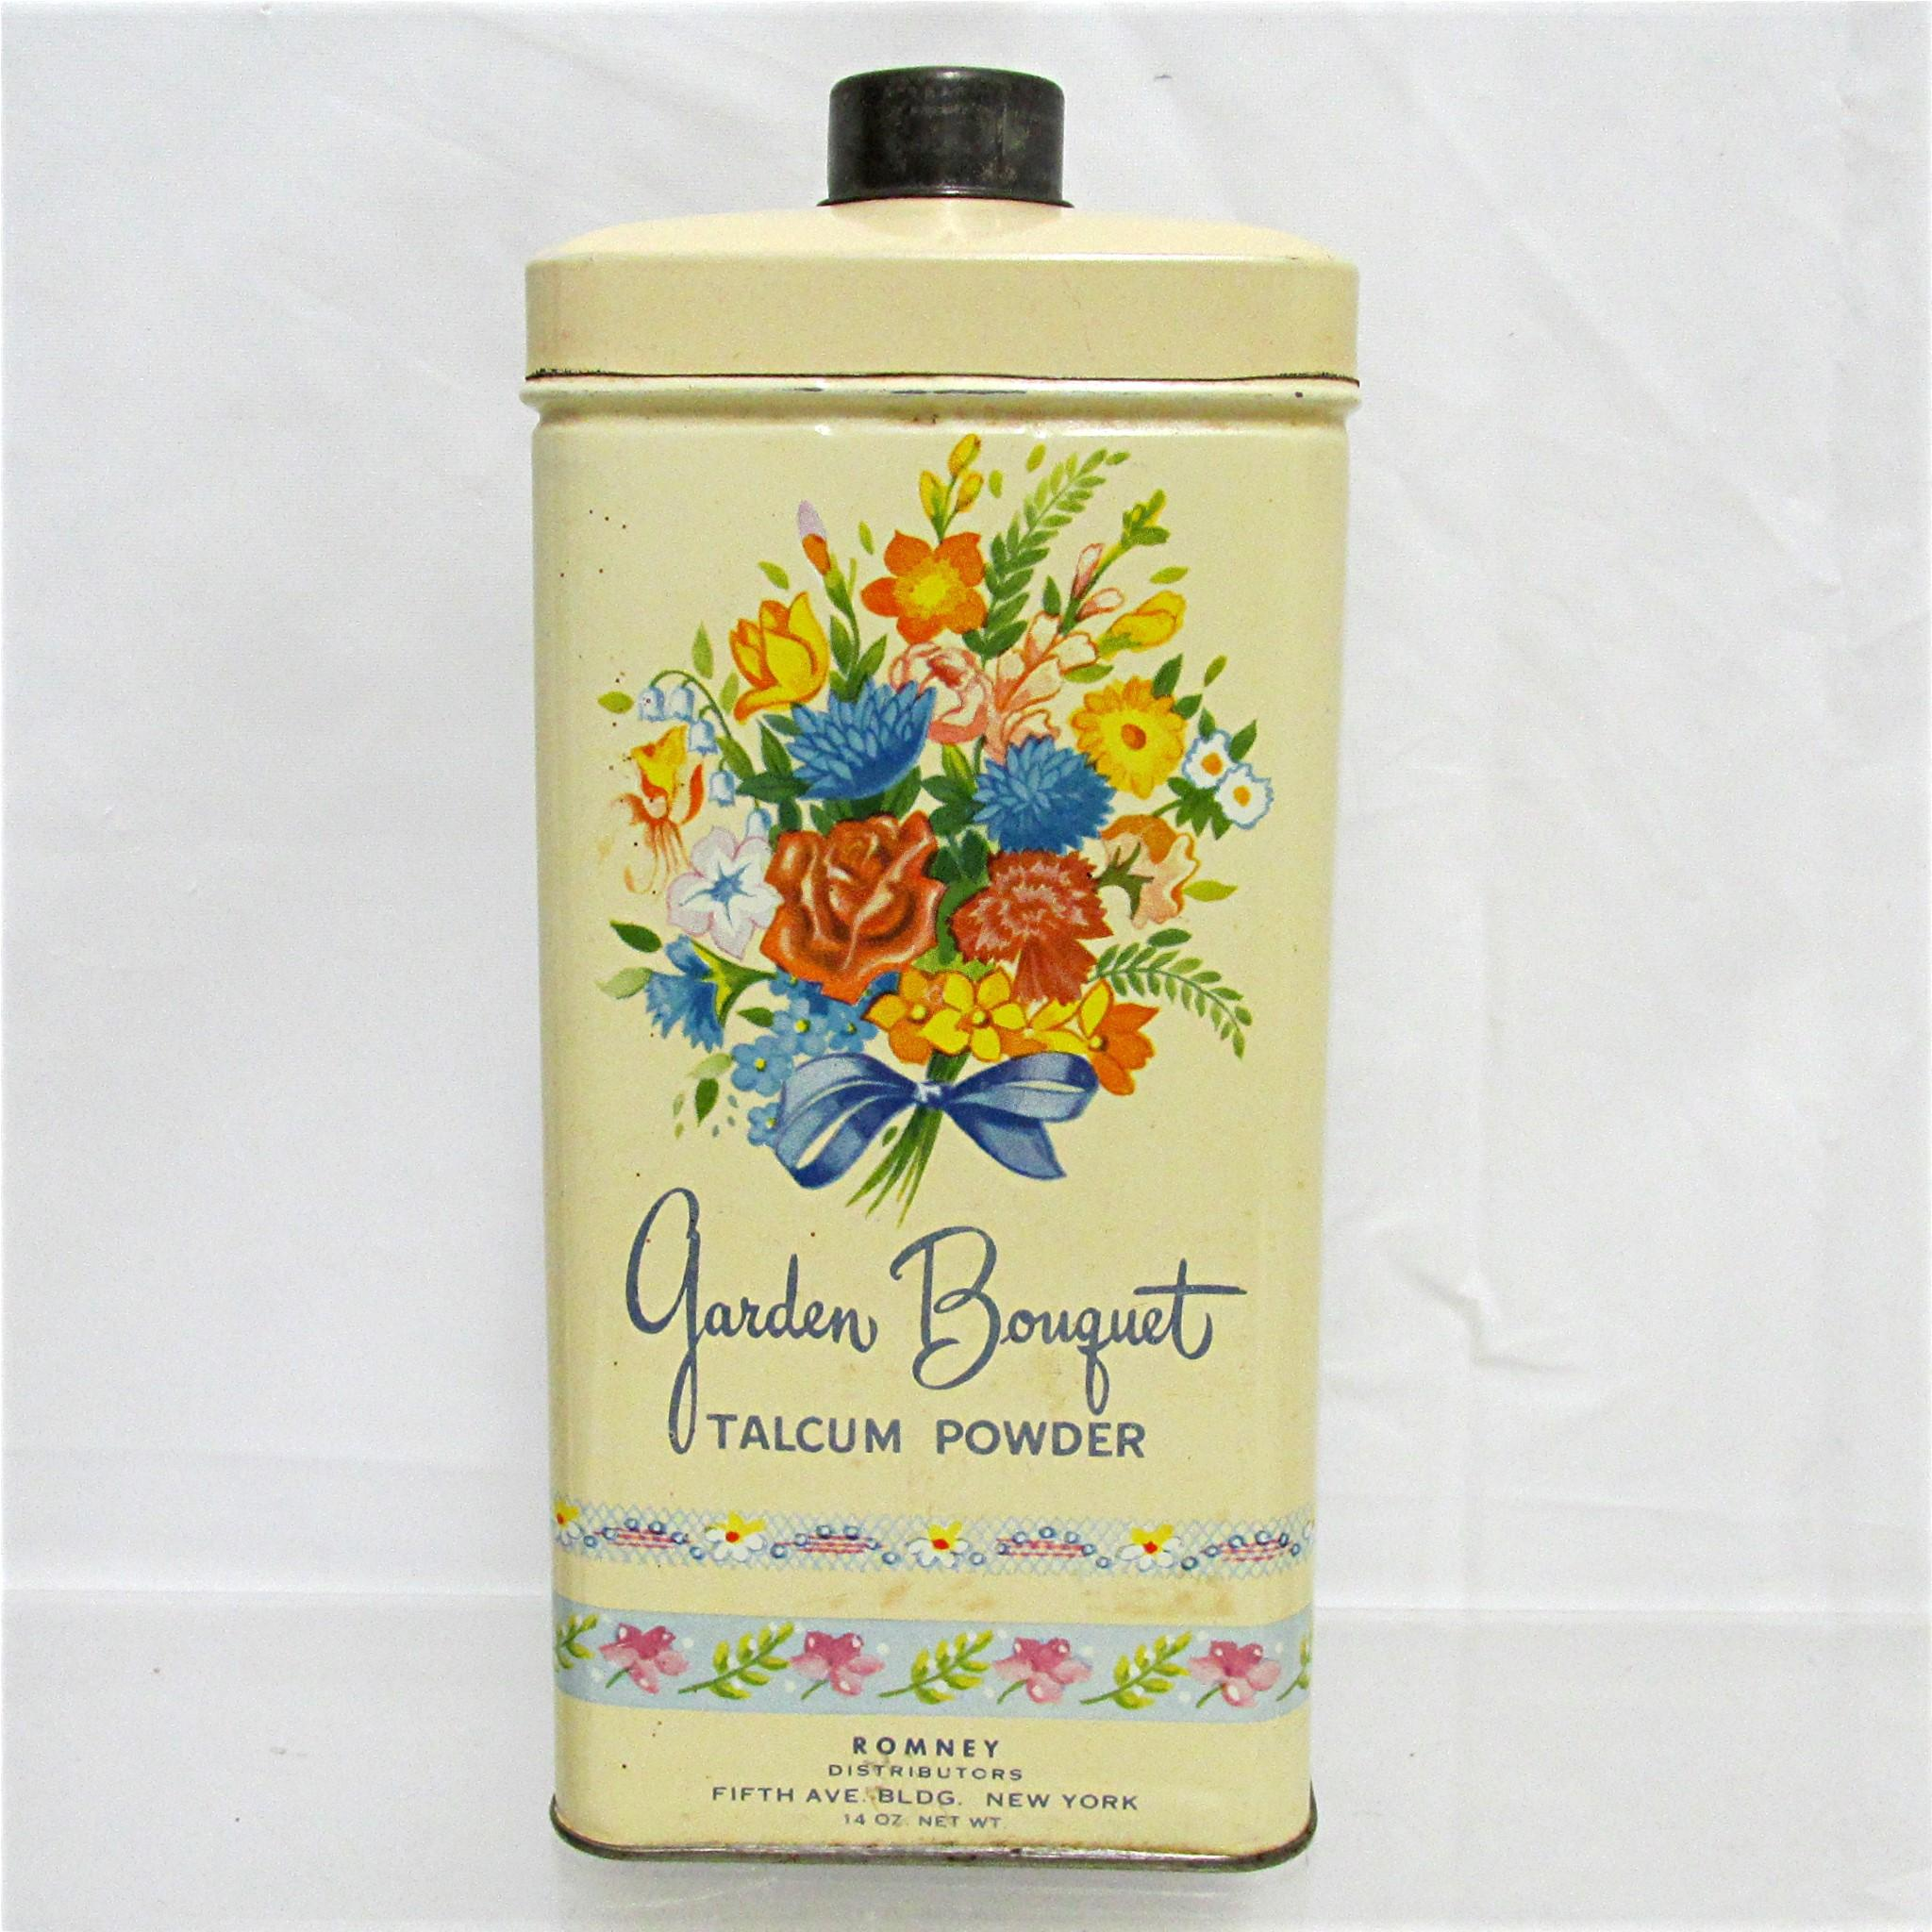 Advertising Garden Bouquet Talcum Powder Talc Tin